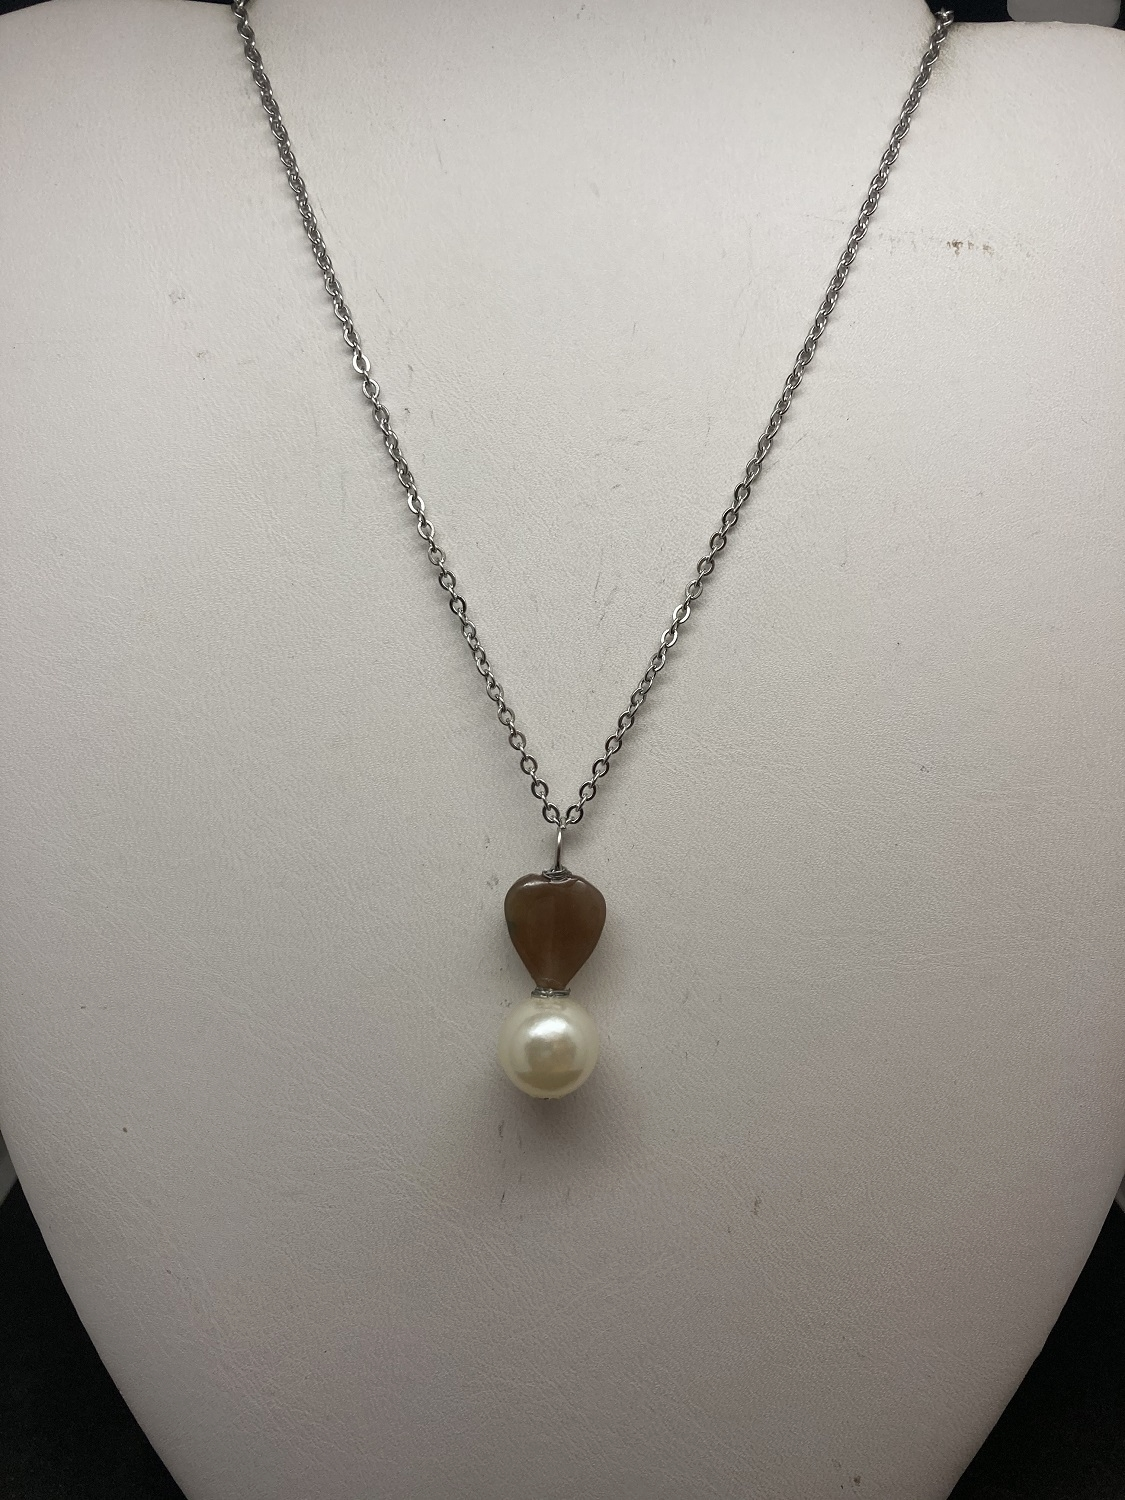 Brown Quartz Heart Chain Necklace with Pearl Bead